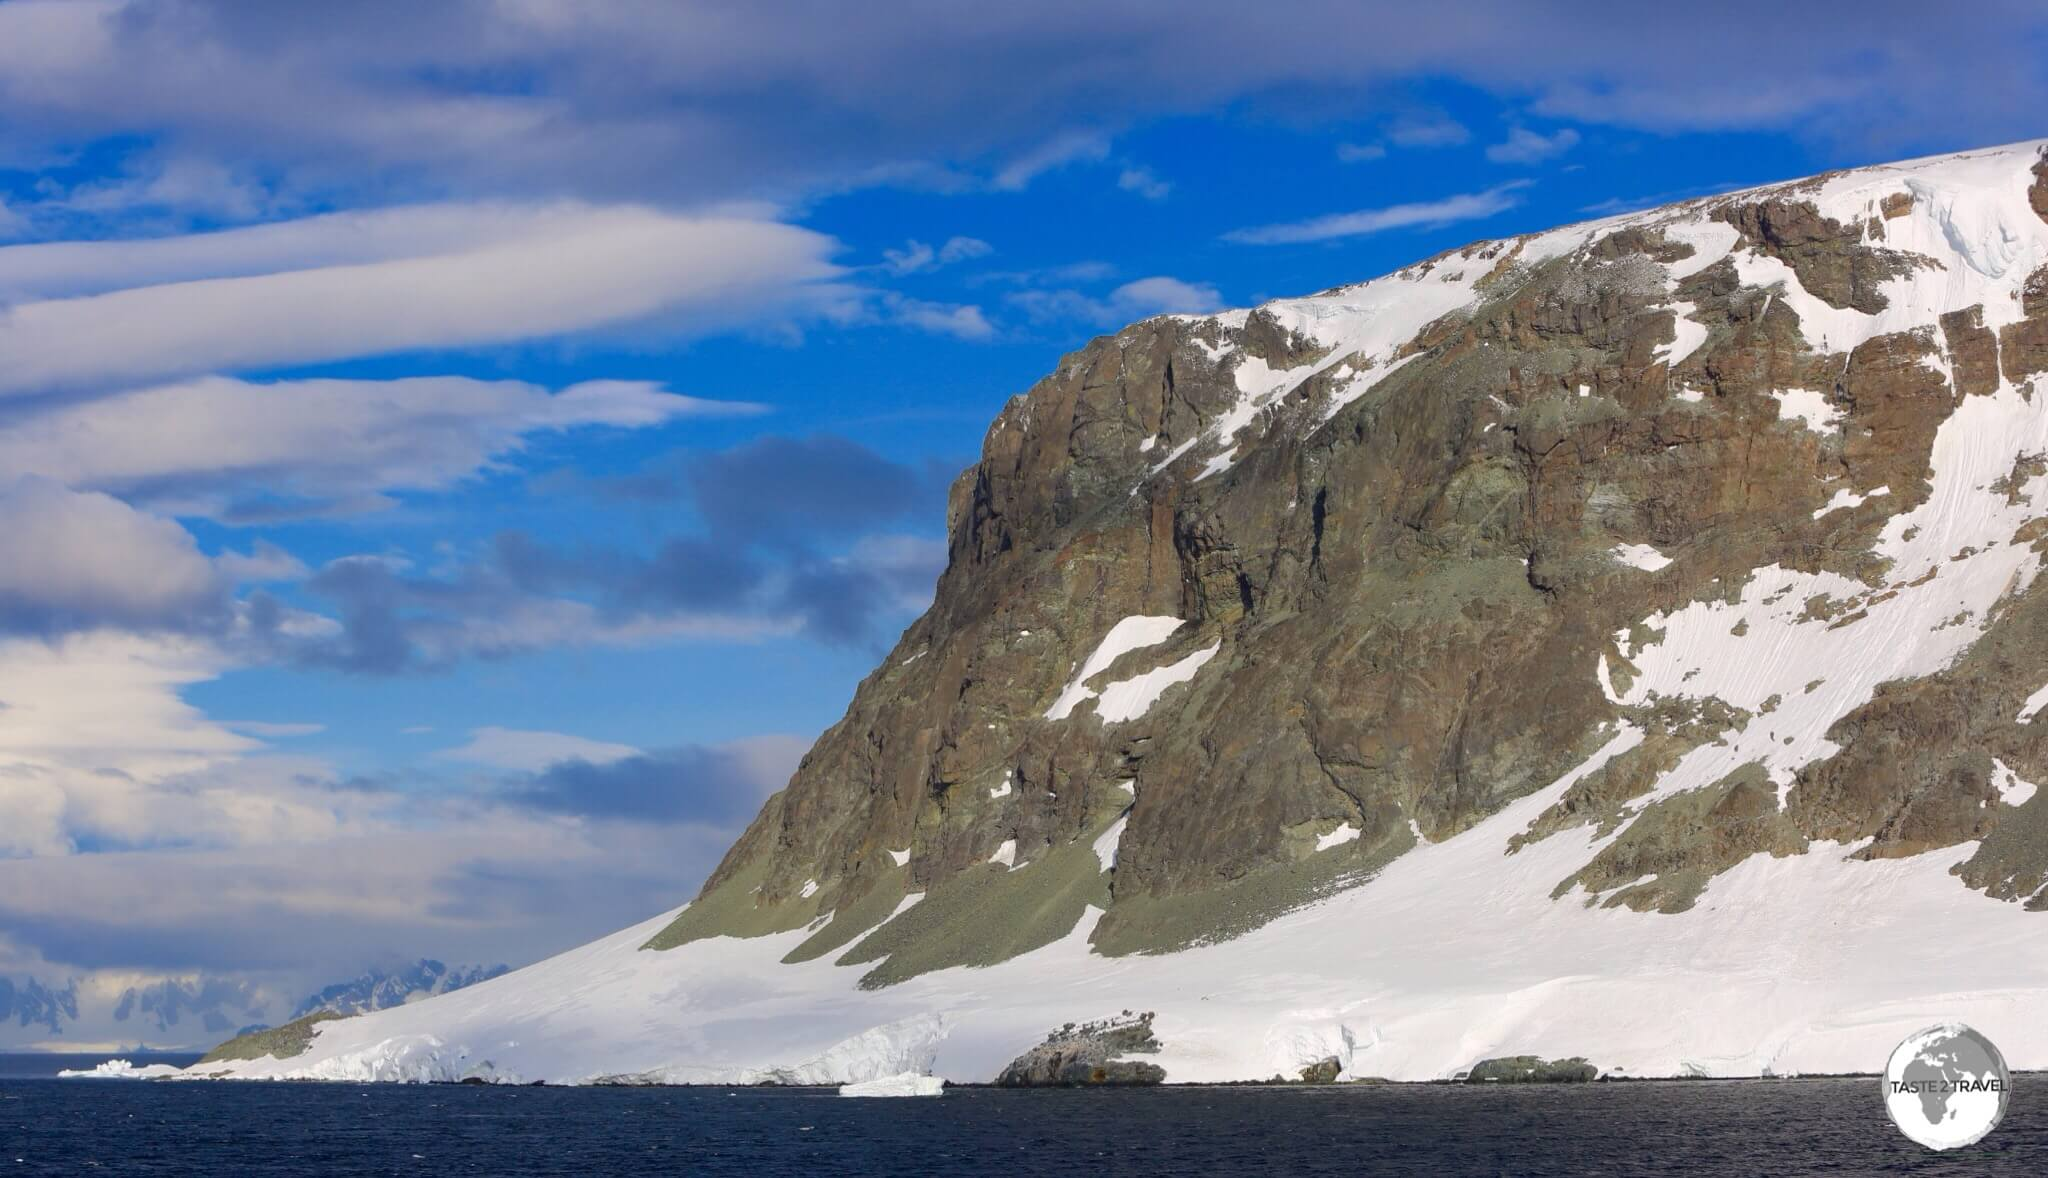 Our first blue skies in Antarctica came on the afternoon of day 7 while sailing through the stunning Lemaire channel.